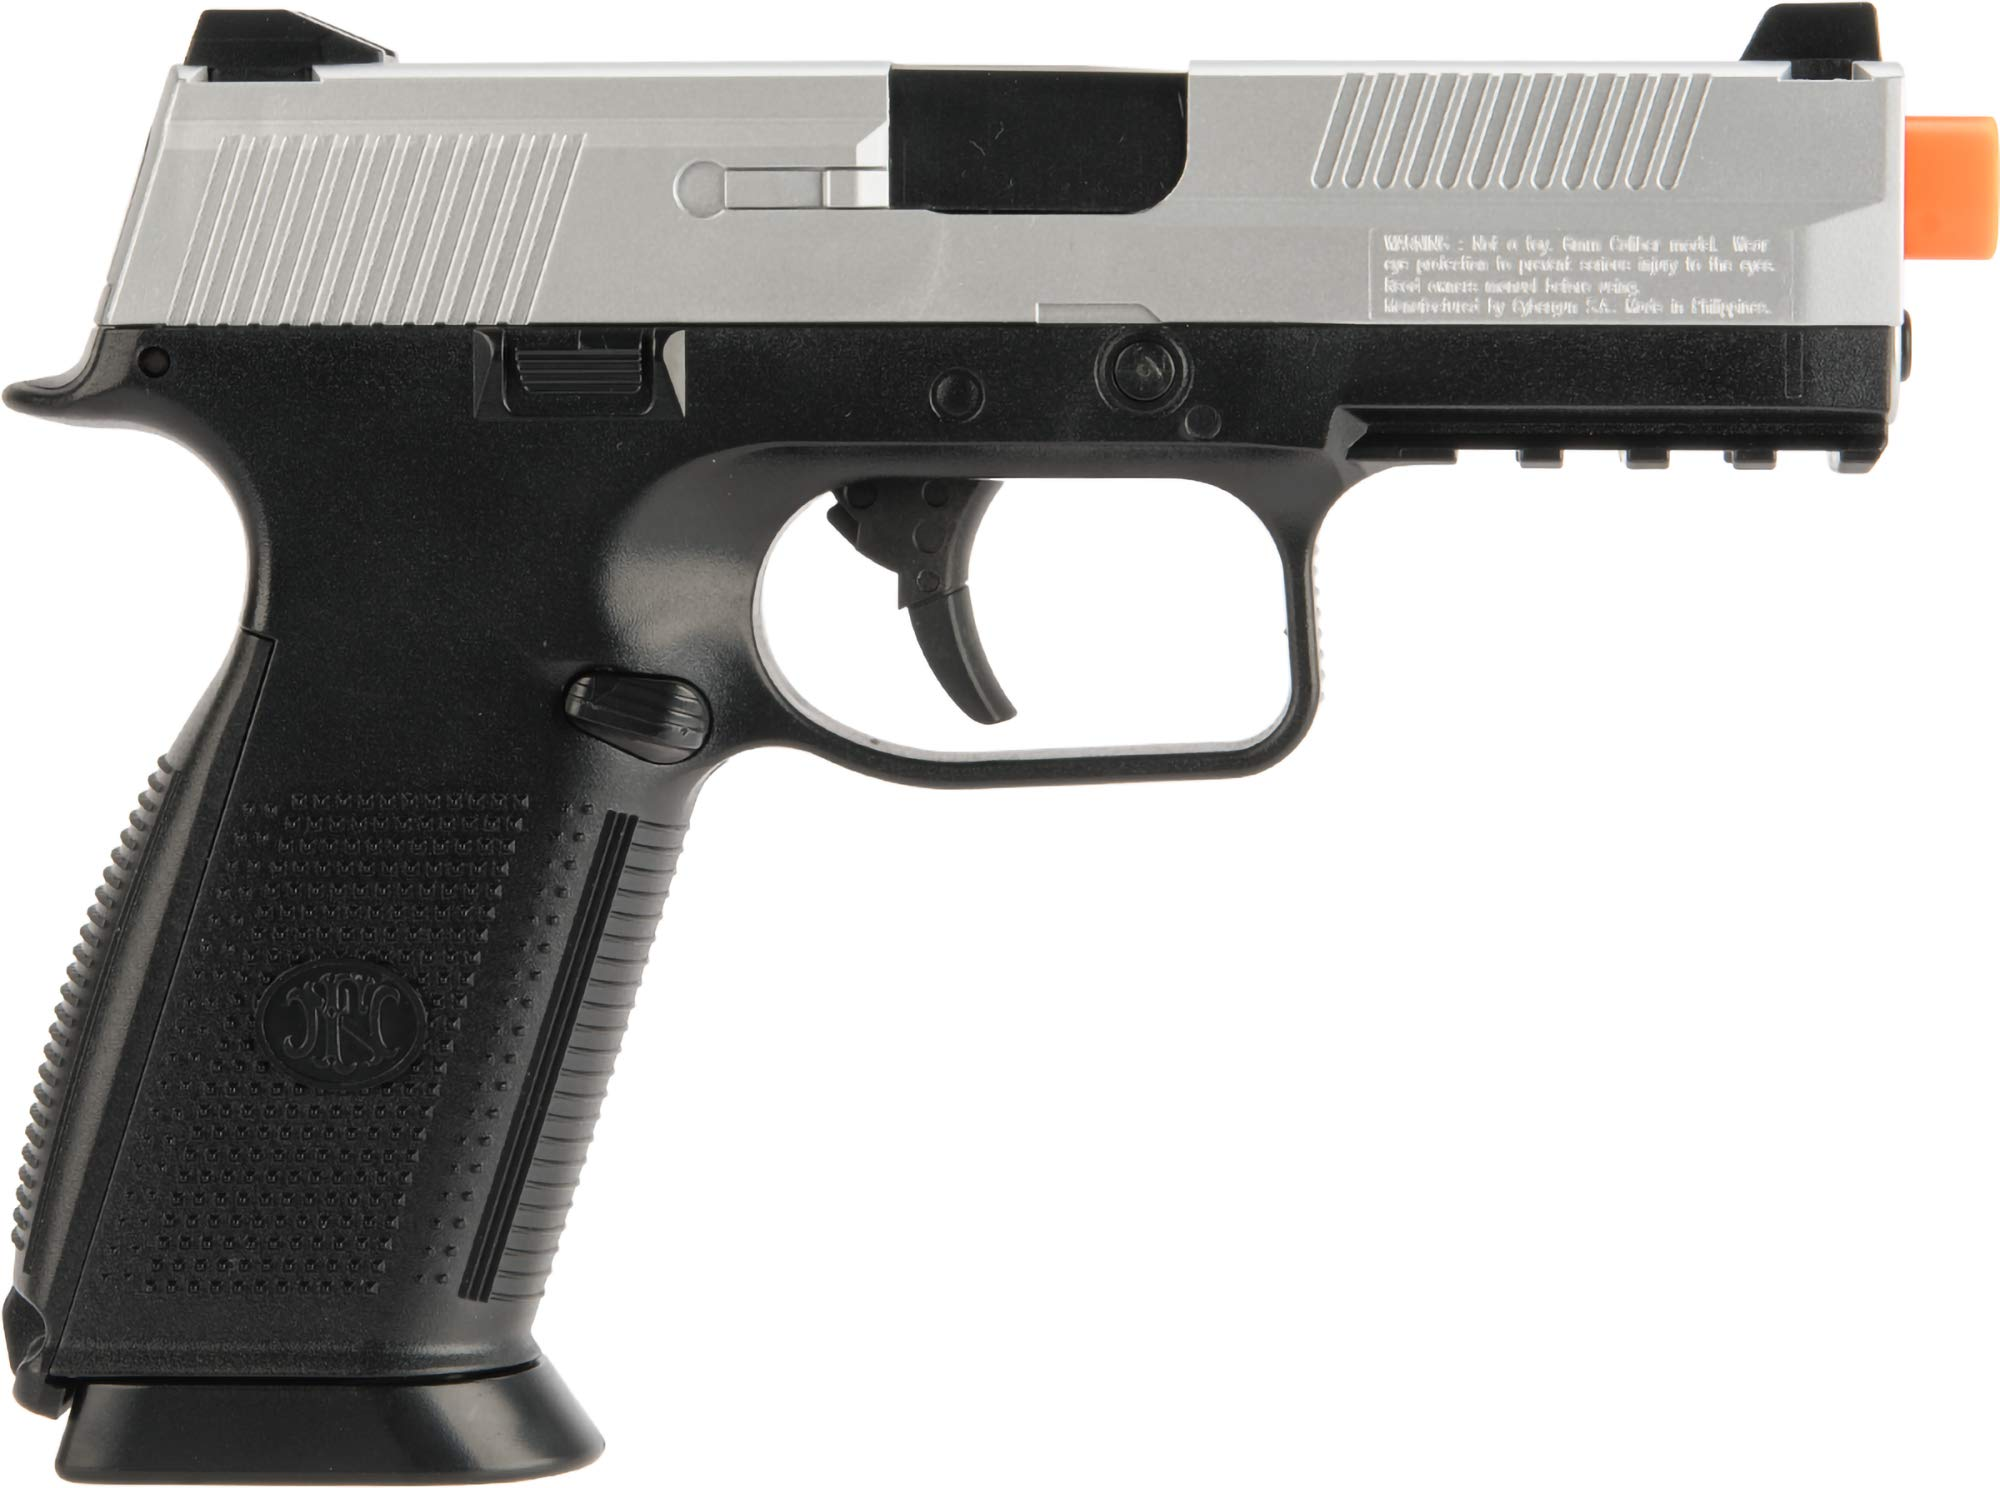 Evike Fn Herstal Fns 9 Airsoft Spring Pistol By Cybergun Buy Online In India At Desertcart Productid 134503659